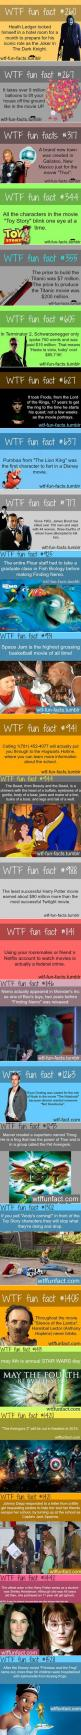 WTF Fun Facts about movies